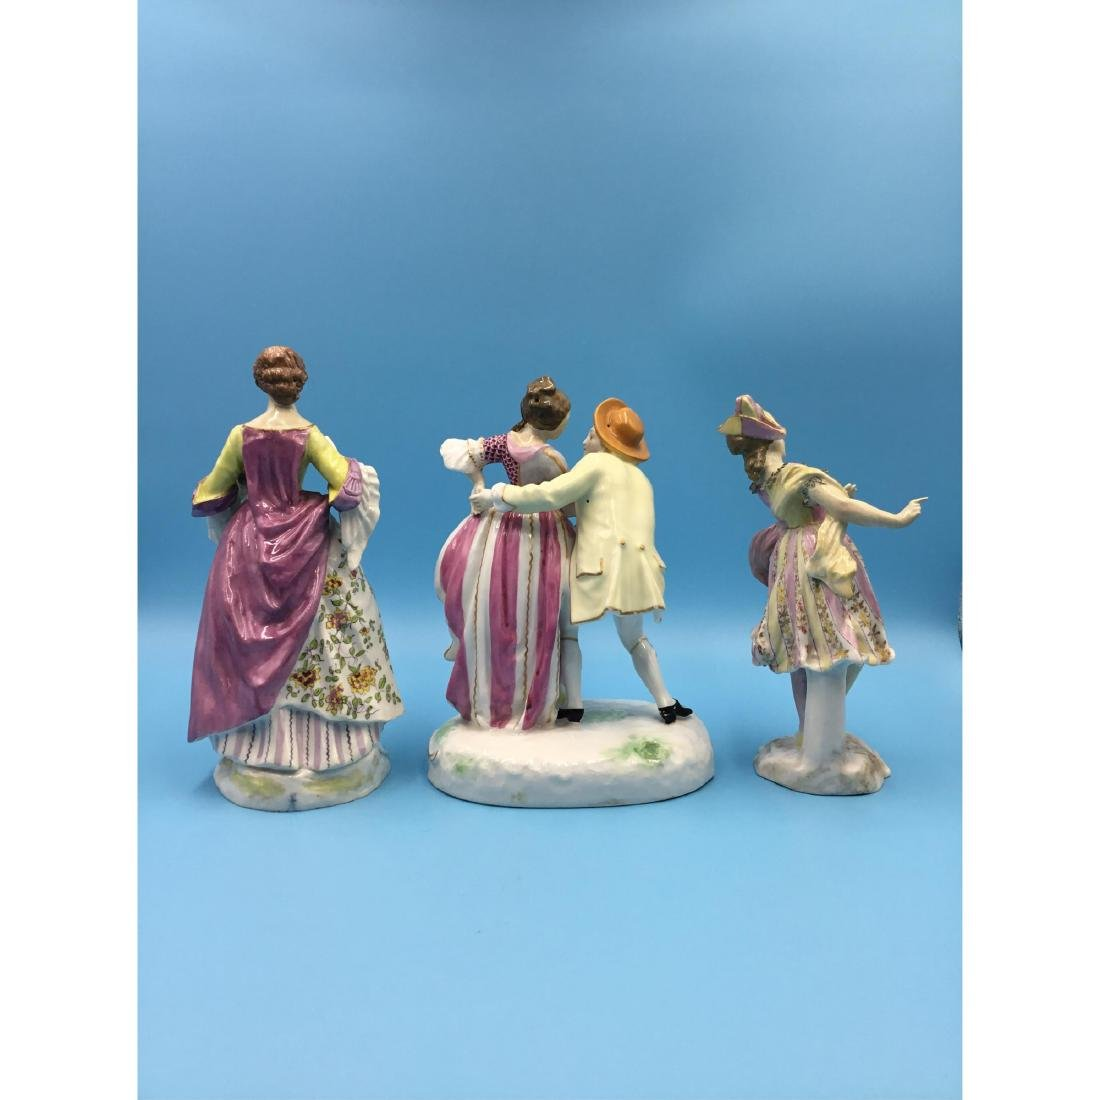 GROUP OF 3 SAMSON FRENCH PORCELAIN FIGURINES - 3